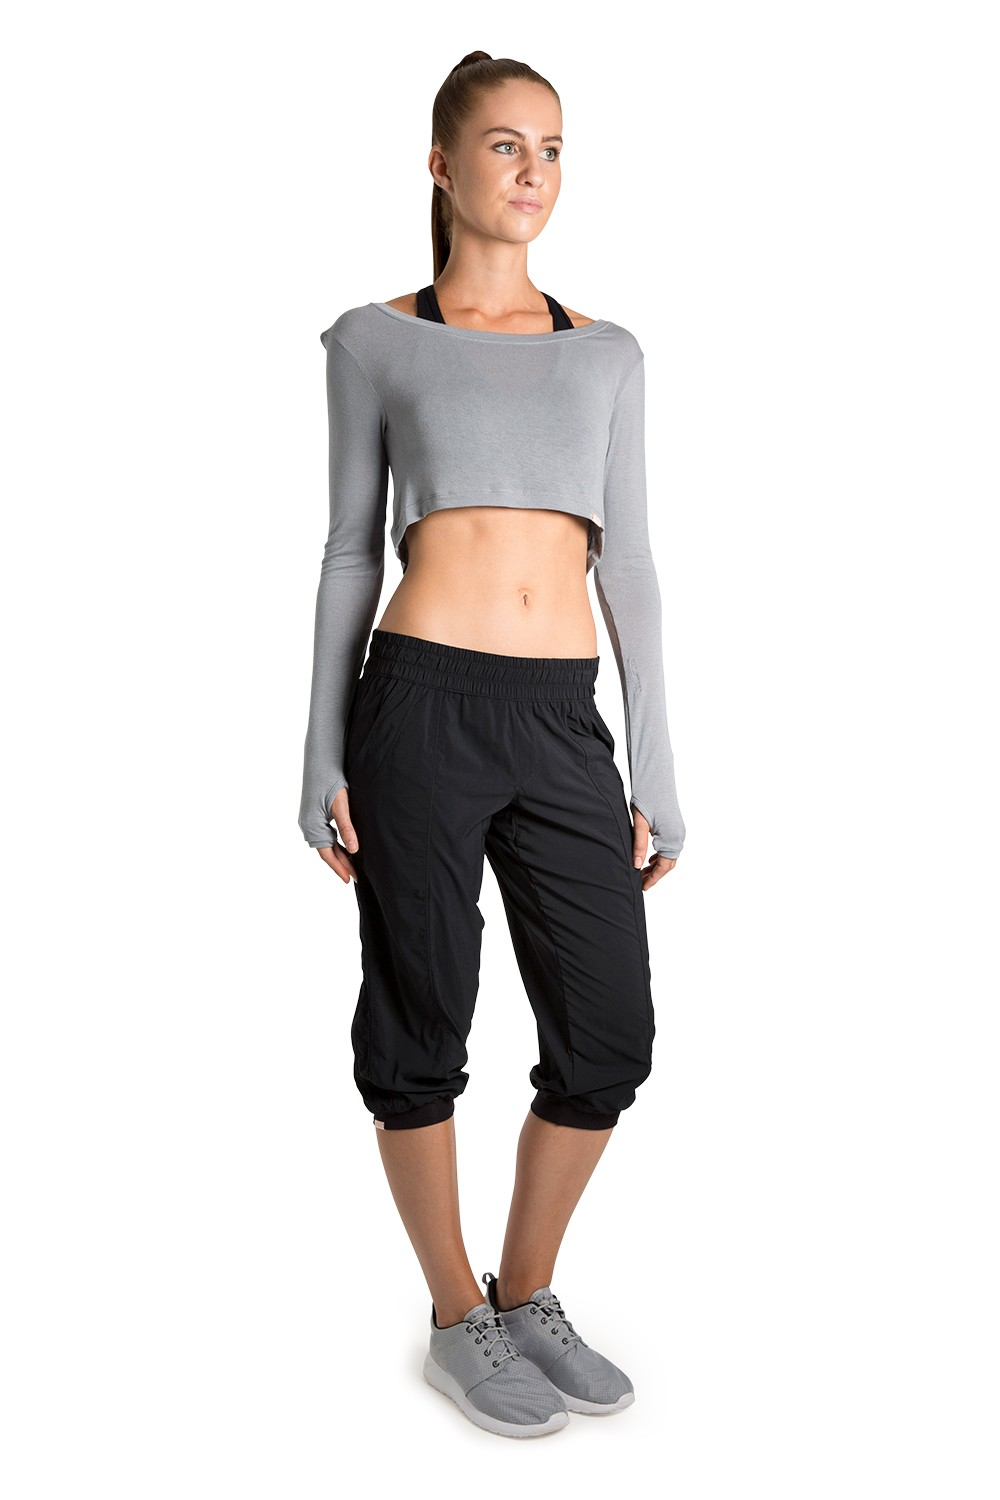 Ripstop 3/4 Pant Women's Dance Pants